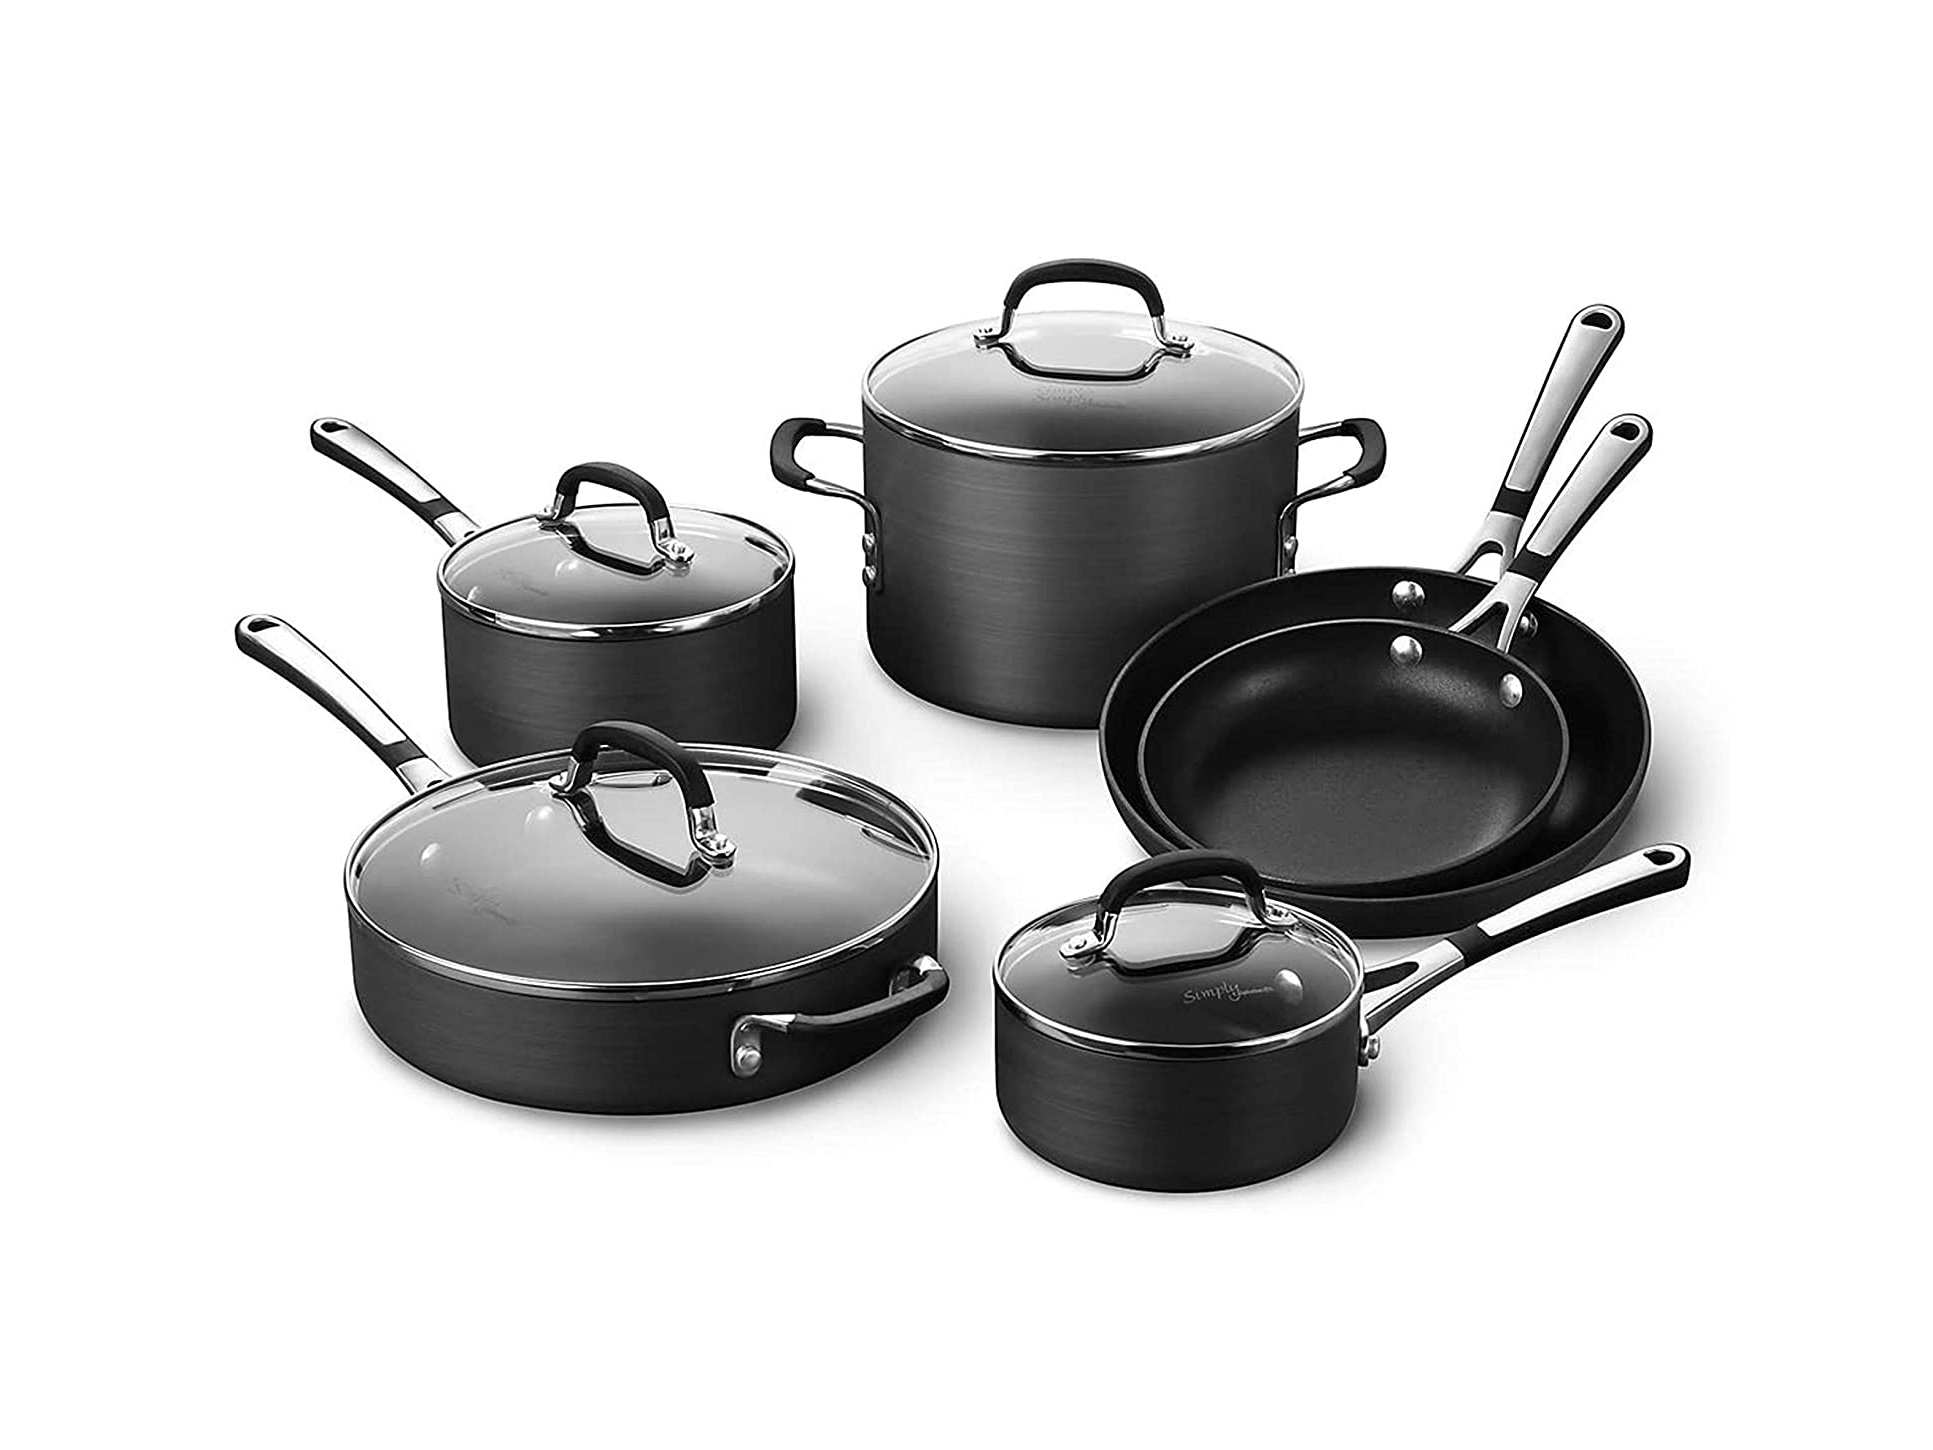 Calphalon Non-Stick Cookware Set